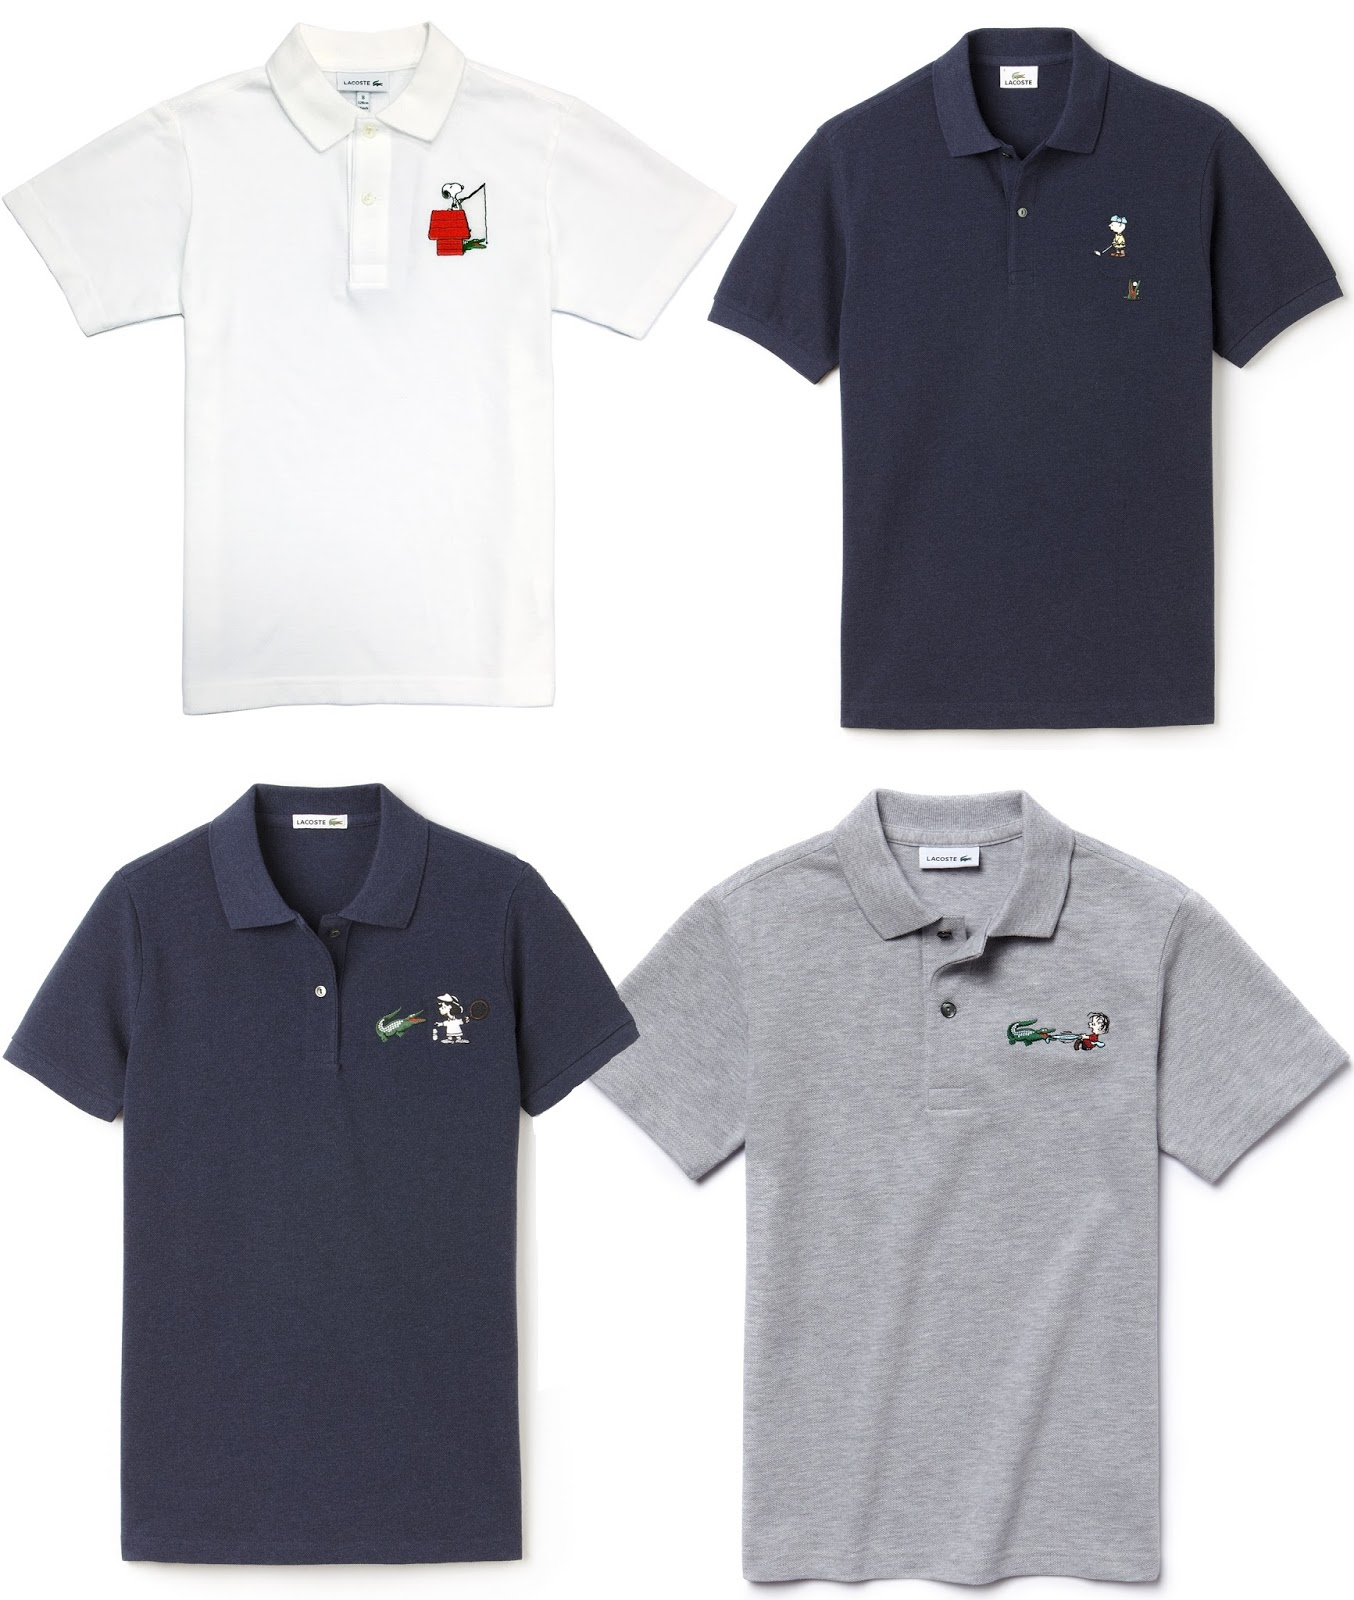 2b0672857 The Blot Says...  Peanuts x Lacoste 2015 Polo Collection